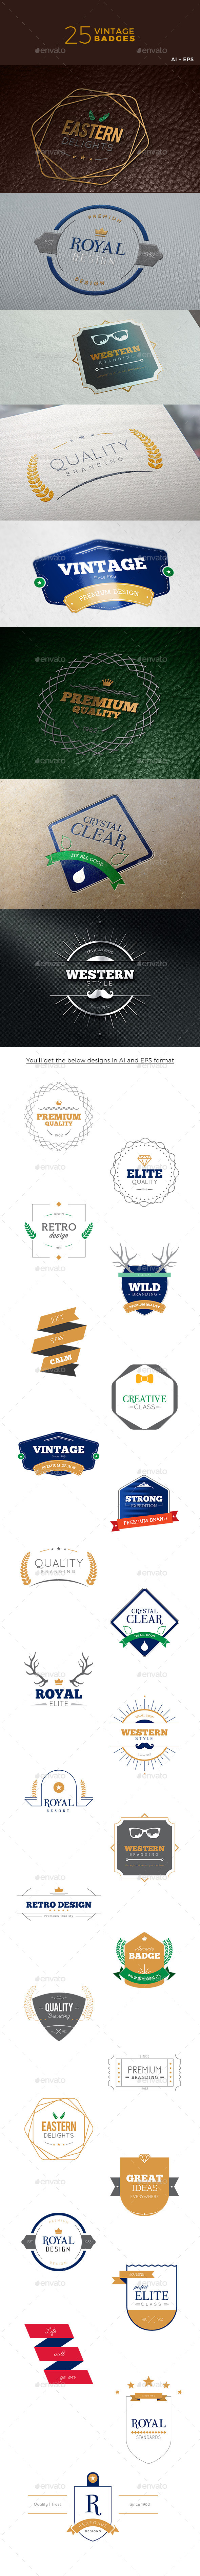 Vintage Badges - Badges & Stickers Web Elements